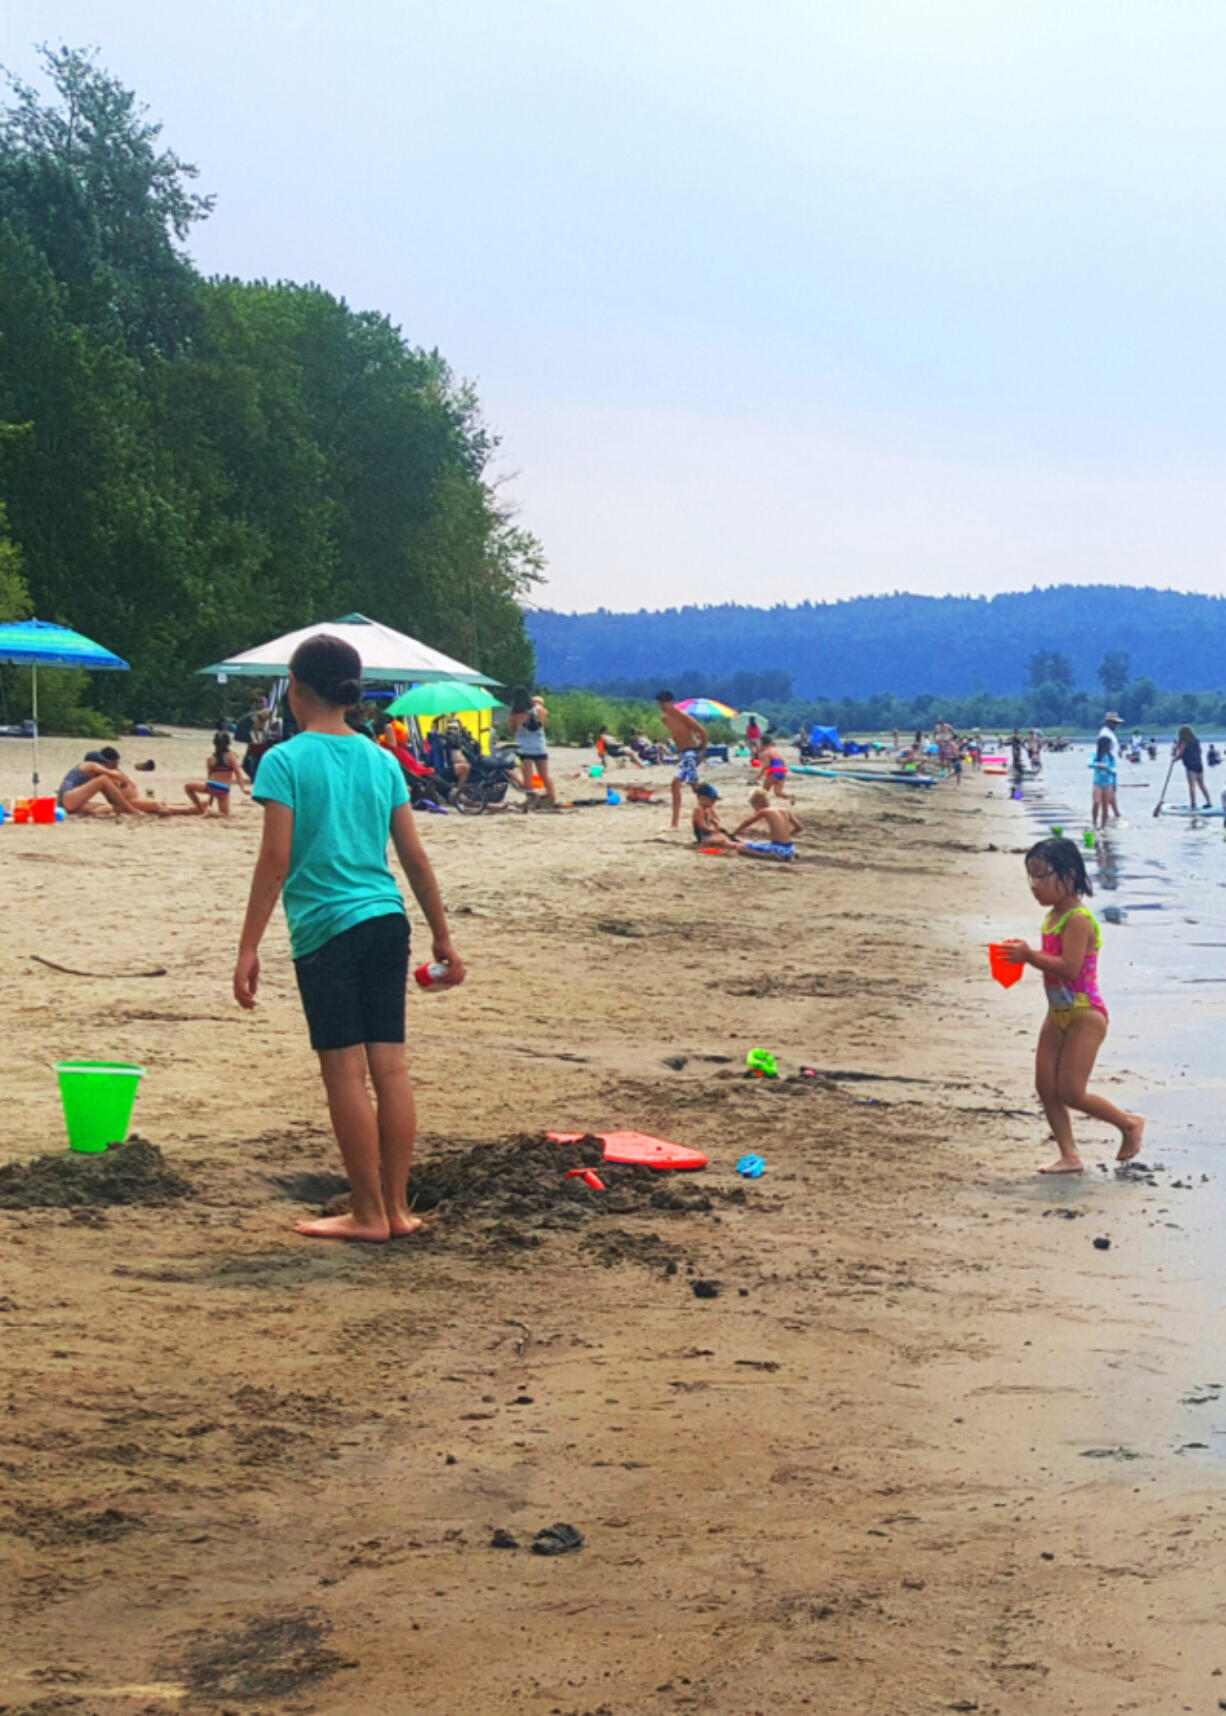 The relatively shallow water near the shores of Cottonwood Beach on the Columbia River offers fun summertime splashing. Even when it's crowded, you can find your spot.